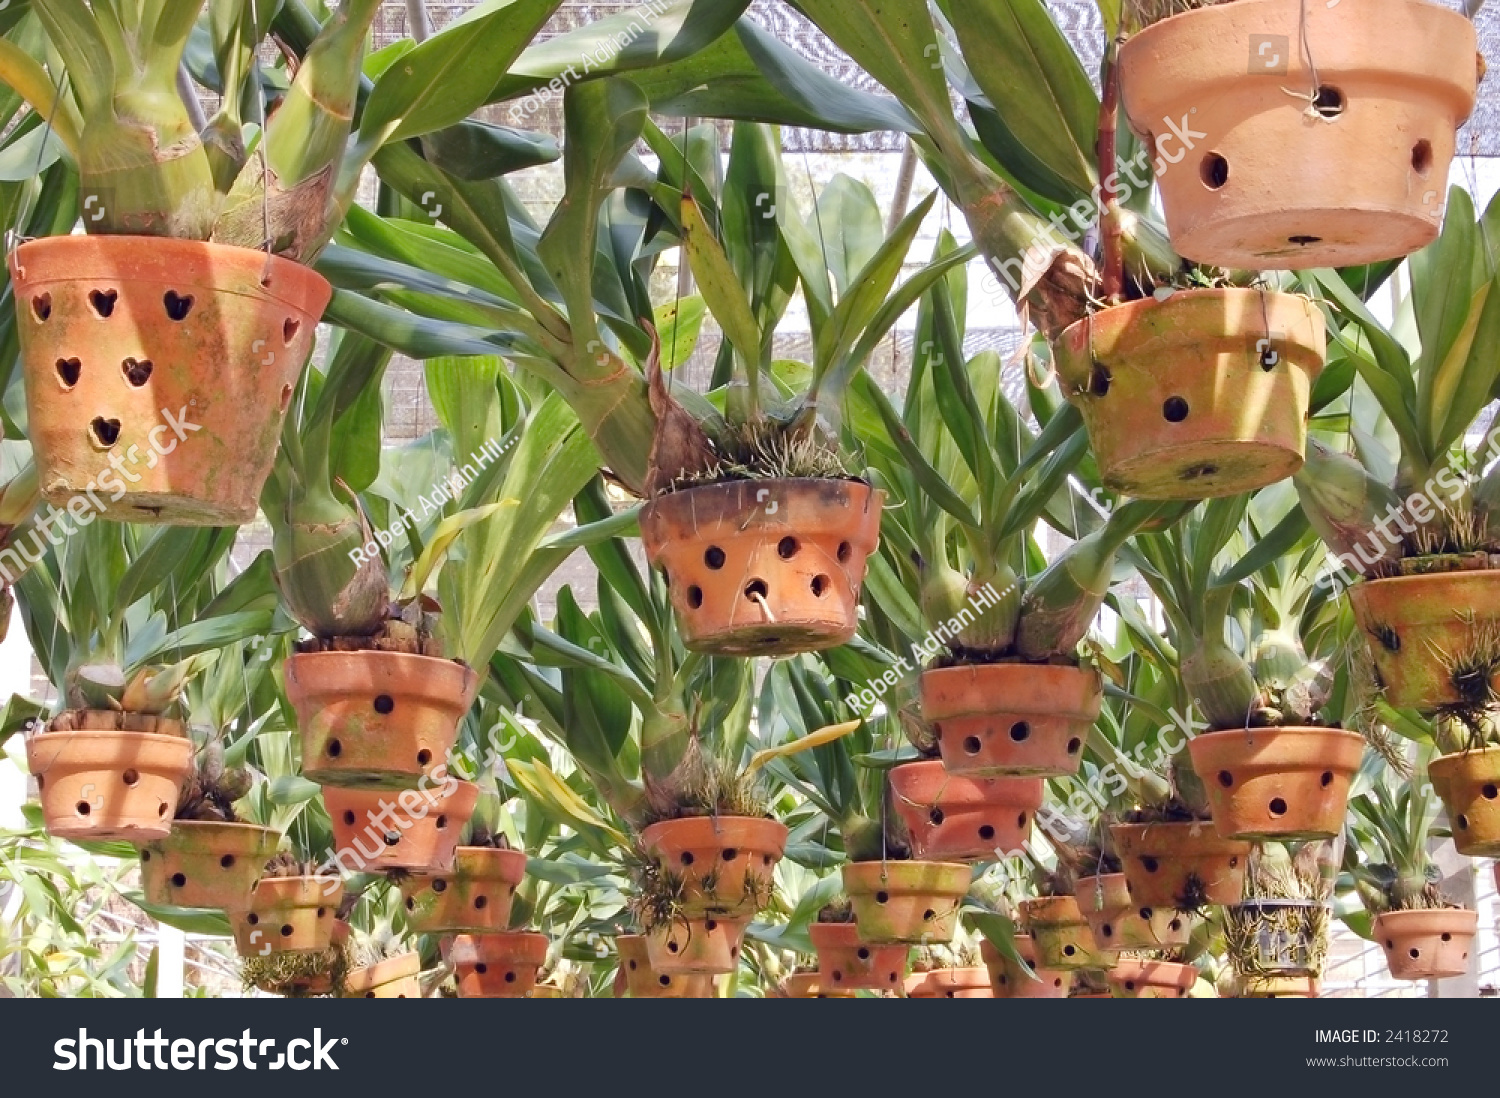 Since The Clay Pots Are Hand Made They Might Drip When First This Will Stip After A While We Remend Before Mounting Orchids You Keep